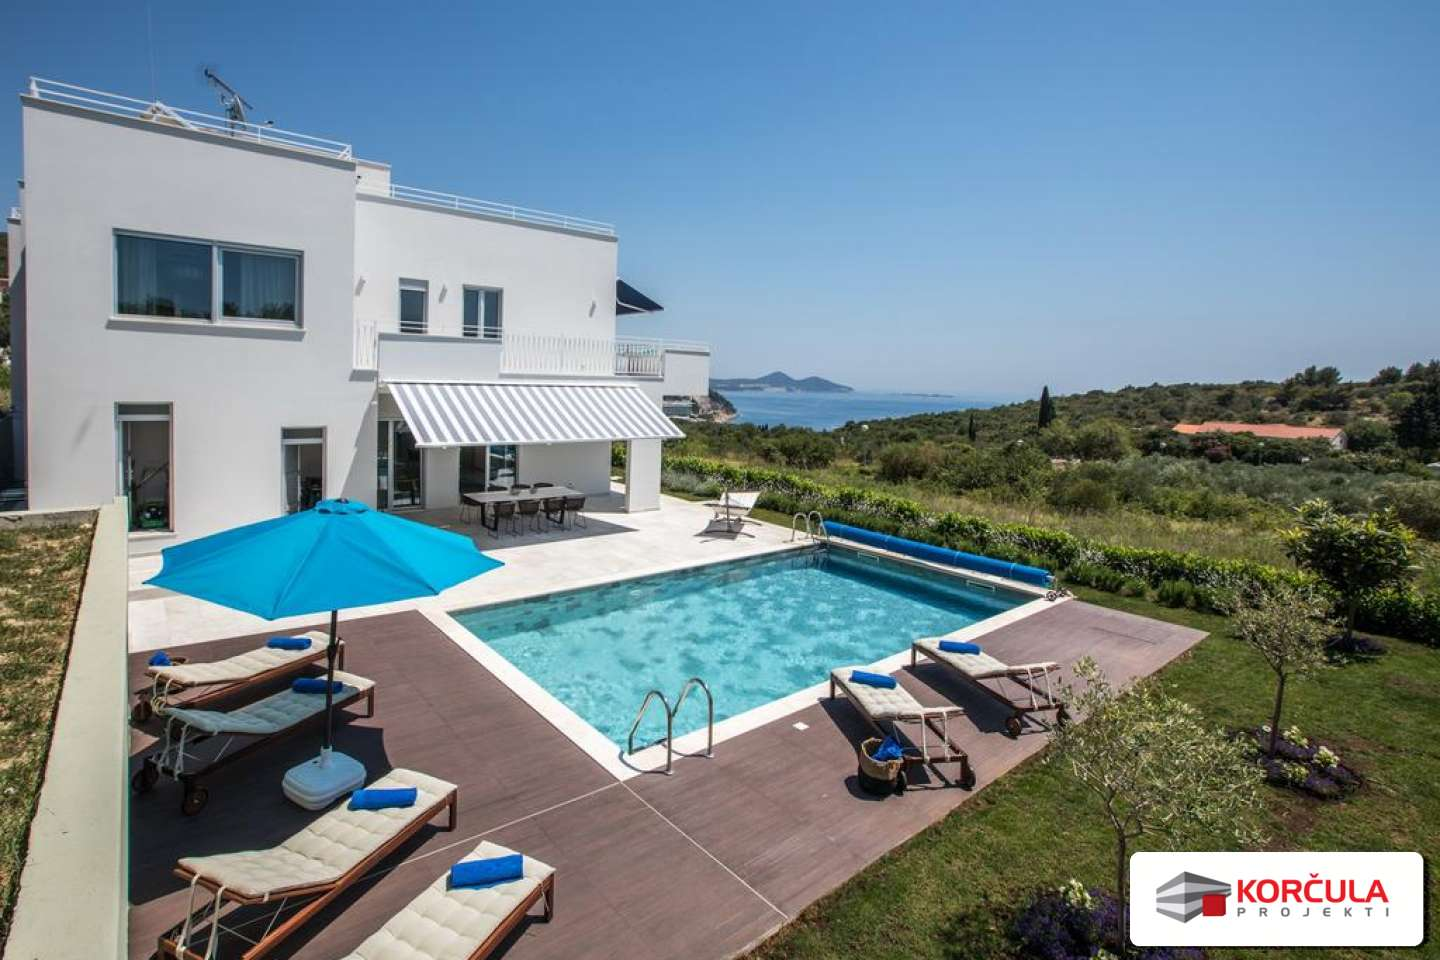 5-star villa with pool and sea view, Dubrovnik Riviera